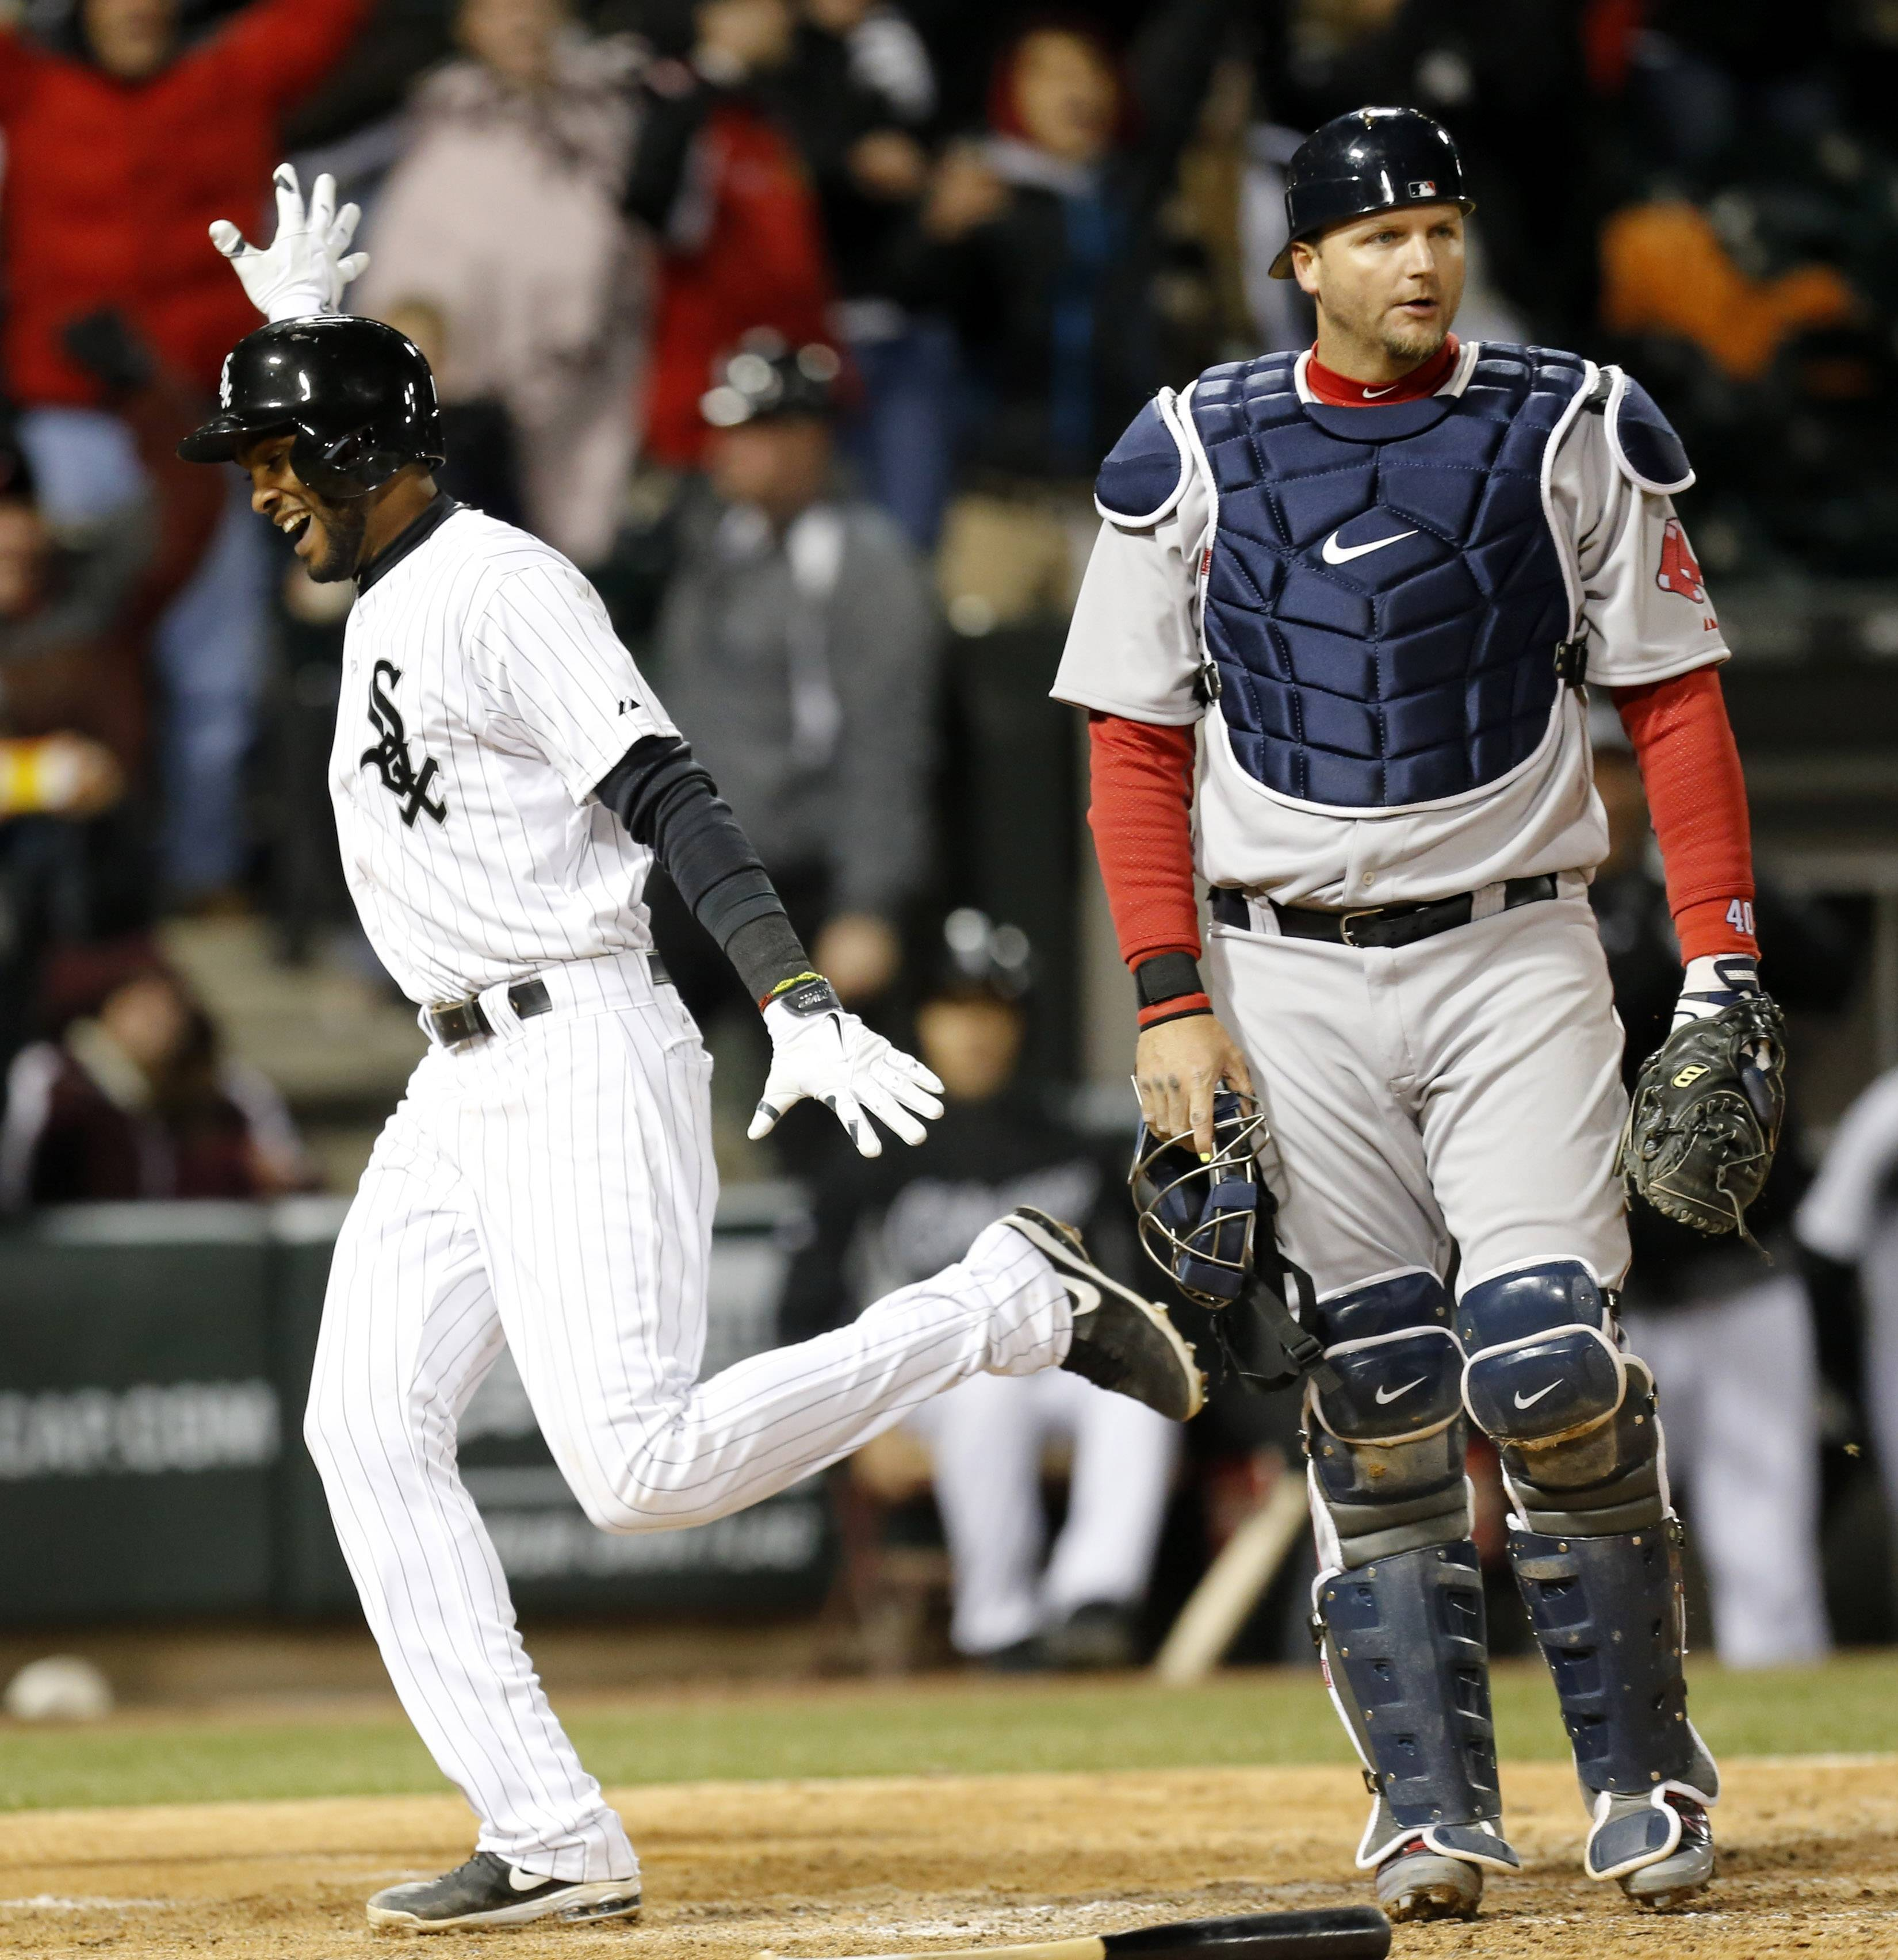 Chicago White Sox's Alexei Ramirez celebrates after scoring the game winning run off a throwing error by Boston Red Sox shortstop Xander Bogaerts as A.J. Pierzynski watches during the ninth inning of a baseball game Tuesday, April 15, 2014, in Chicago. The White Sox won 2-1.